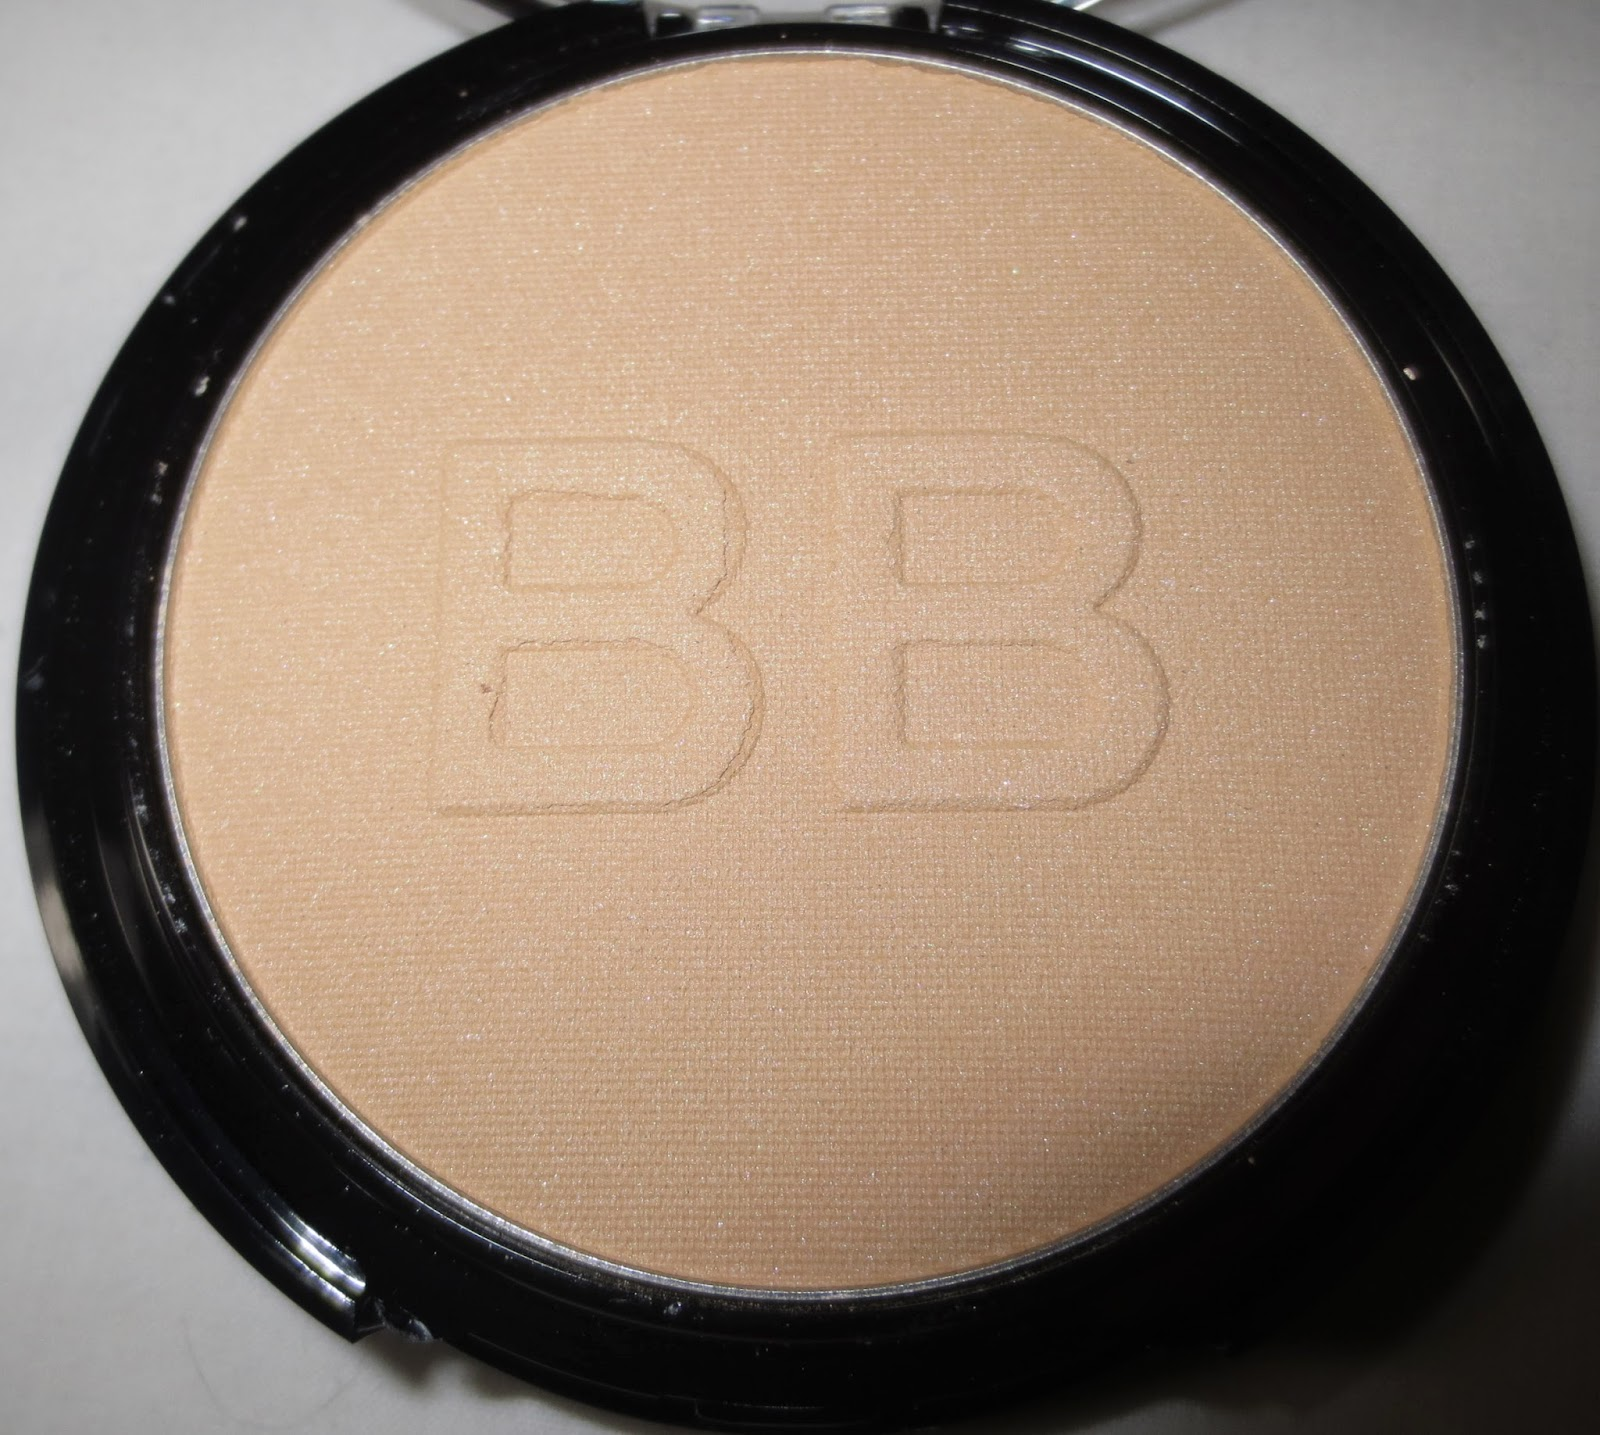 Annabelle BB Compact Makeup